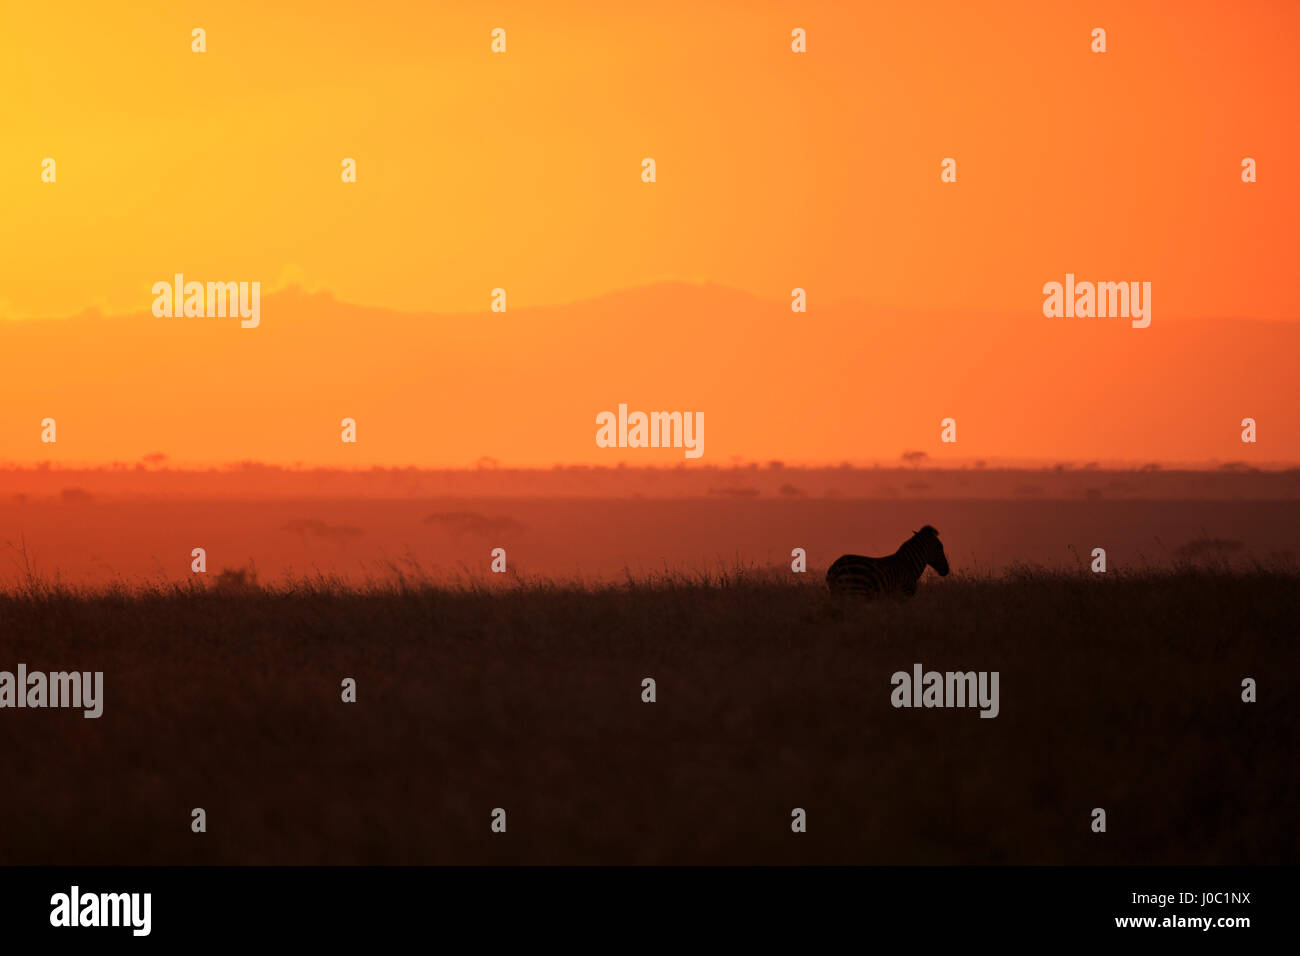 Burchell's zebra at sunrise (Equus quagga), Serengeti National Park, Tanzania - Stock Image